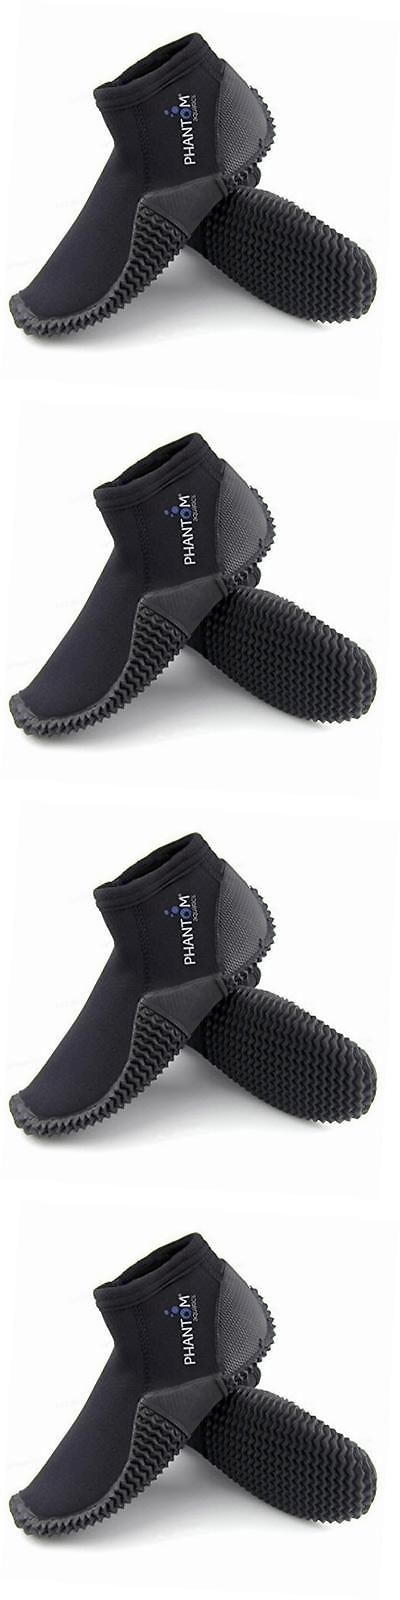 Boots Booties 114234: 3Mm Surf Snorkeling Dive Boots, Size 8 -> BUY IT NOW ONLY: $30.57 on eBay!